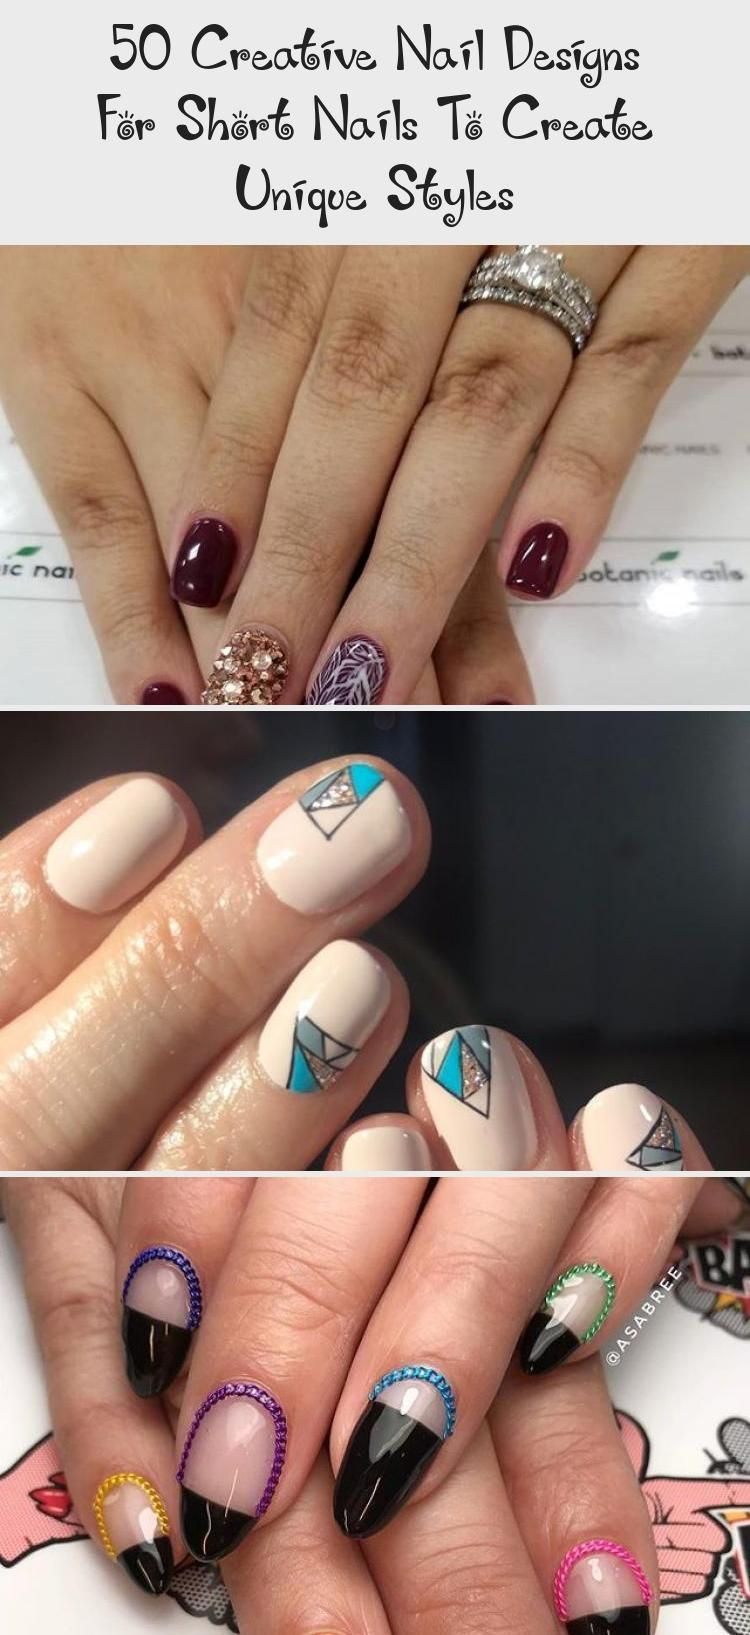 50 Creative Nail Designs For Short Nails To Create Unique